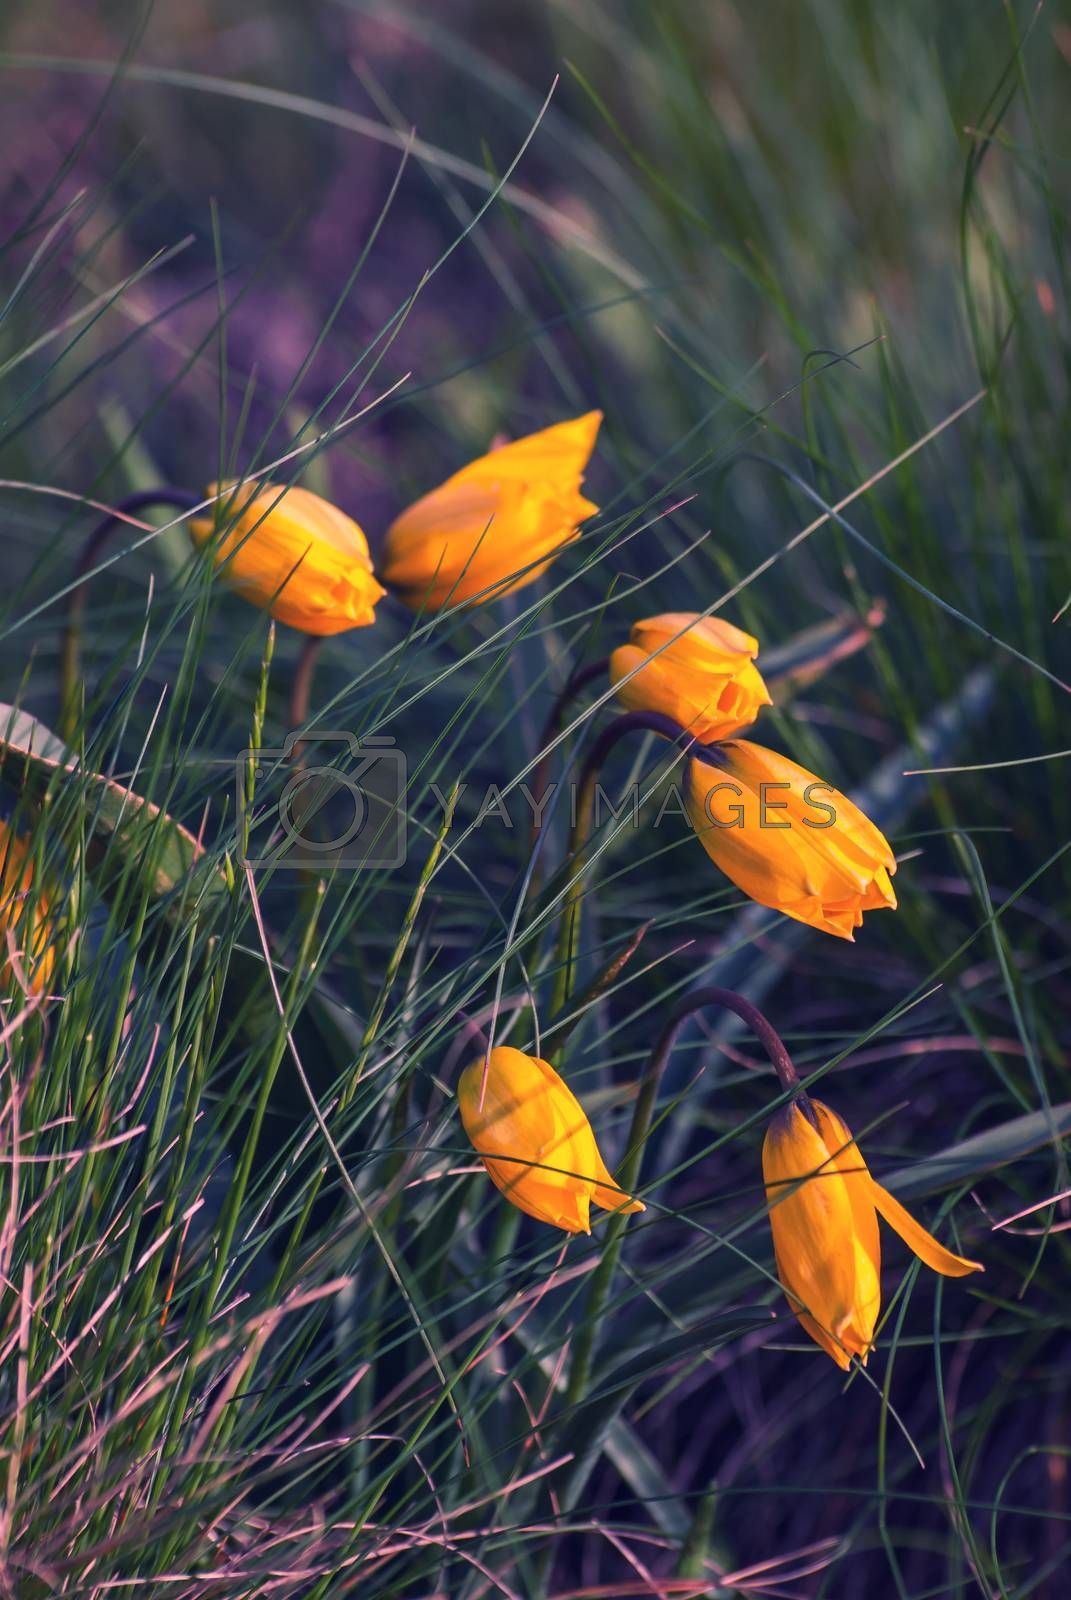 Wild yellow tulips flower in grass on meadow, vintage